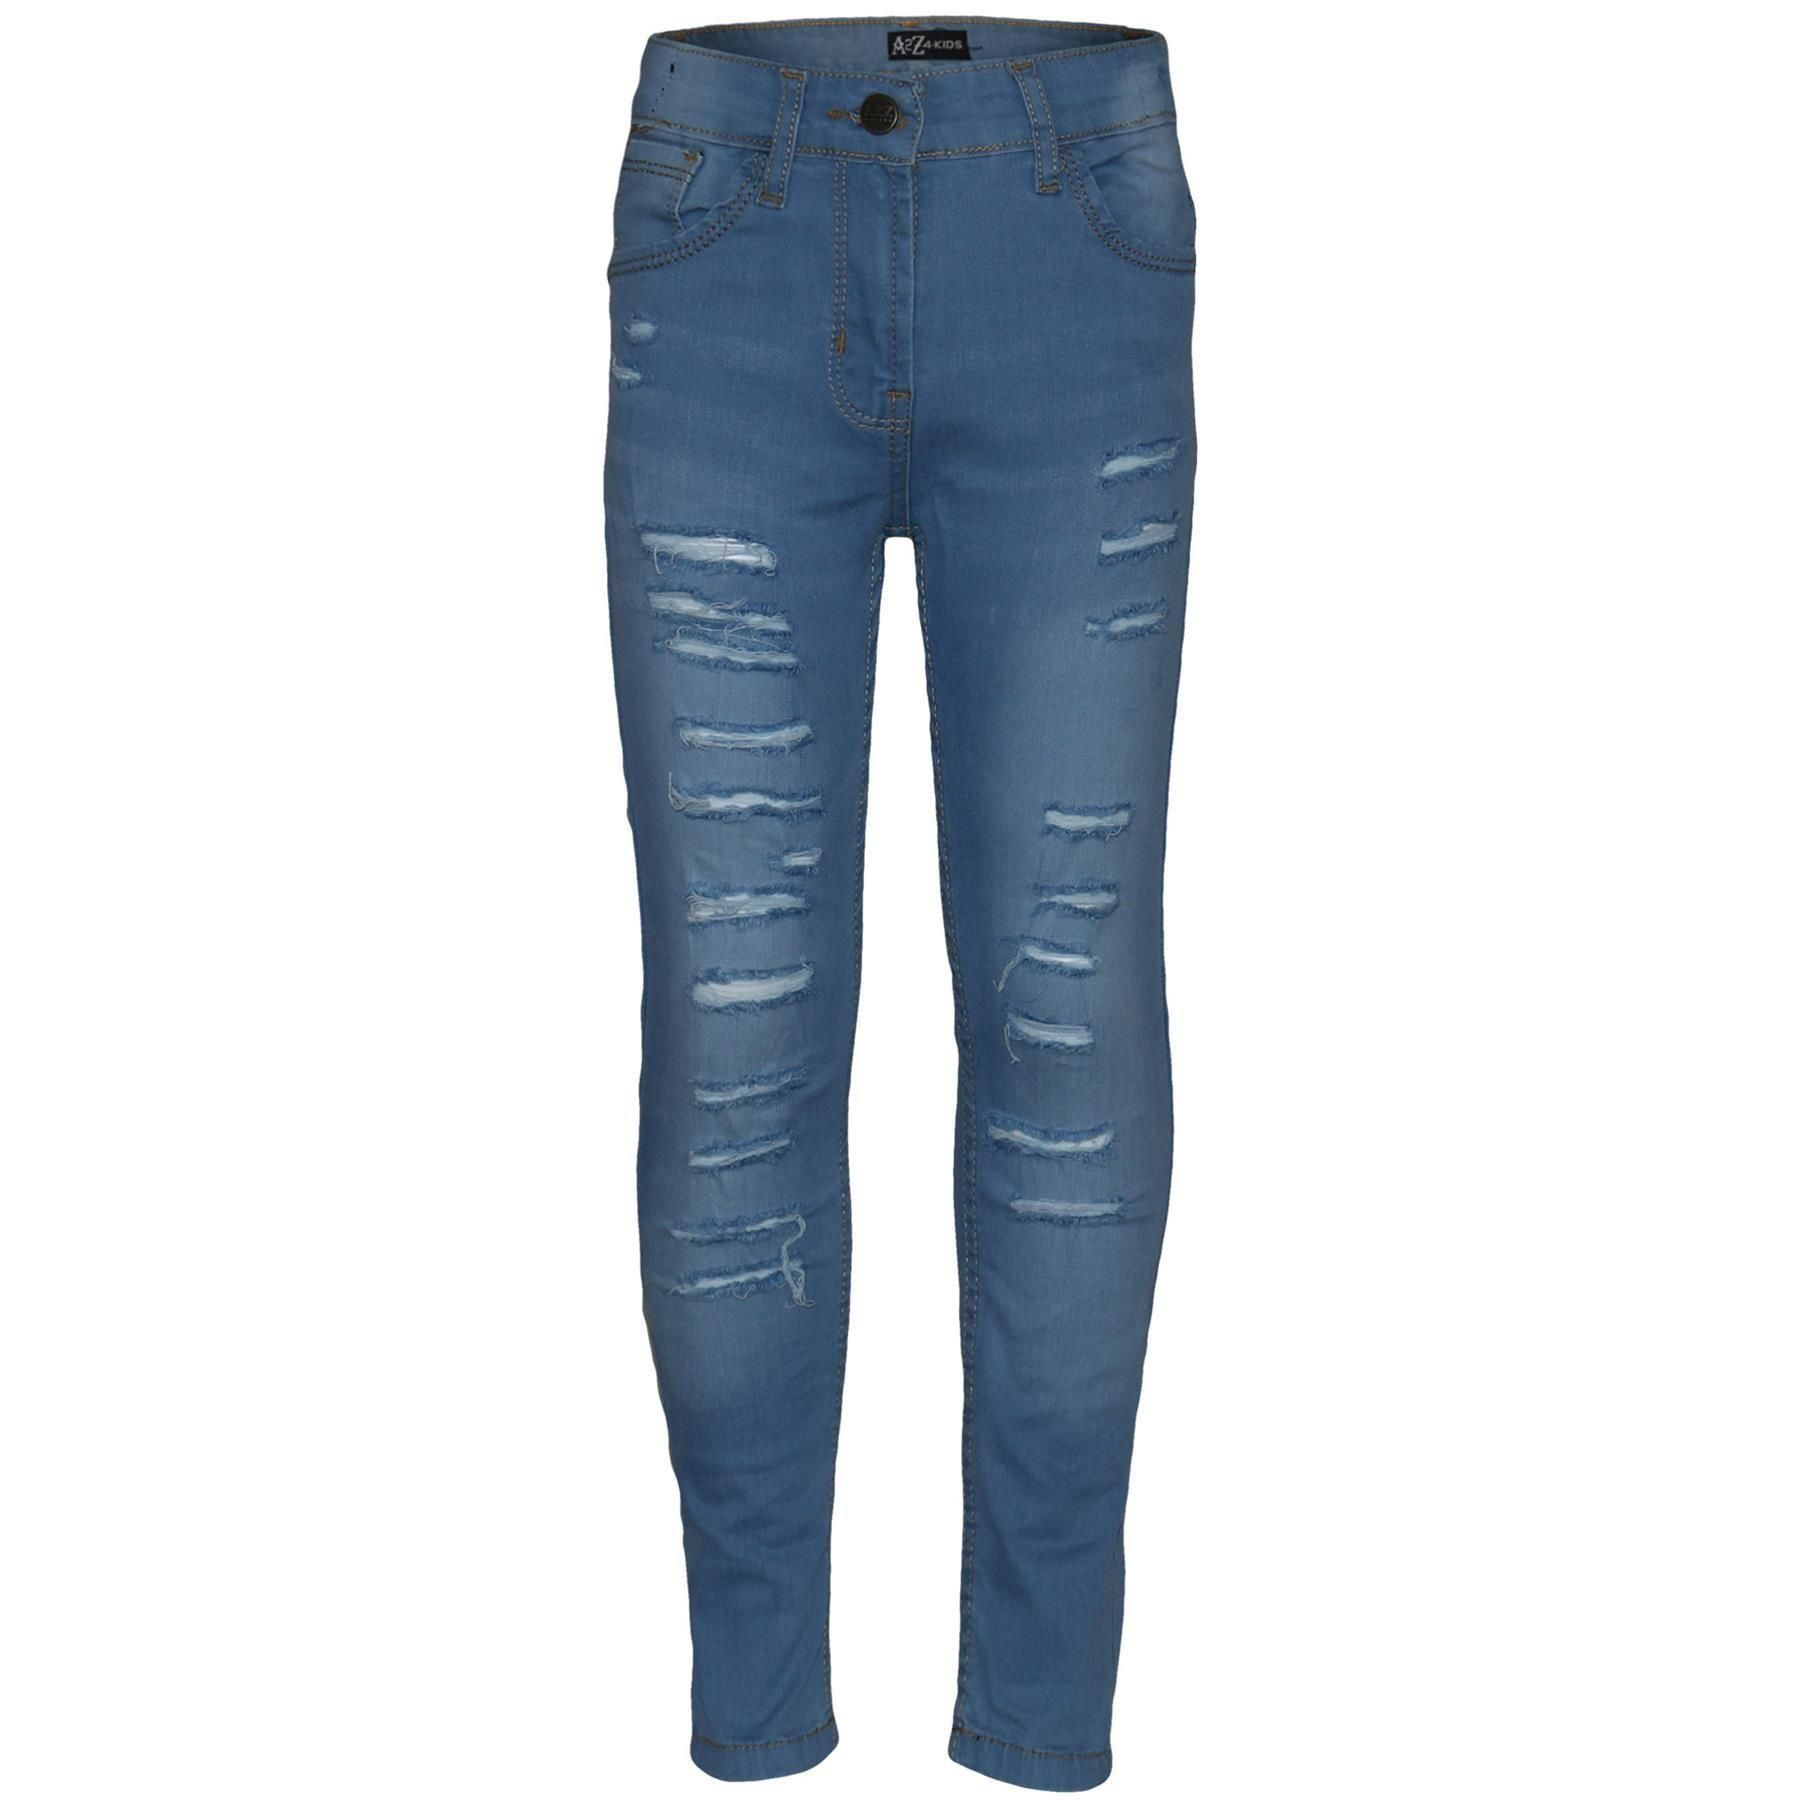 A2Z 4 Kids Kids Girls Stretchy Light Blue Denim Jeans Designers Ripped Faded Fashion Jeggings Skinny Pants Stylish Trousers New Age 5 6 7 8 9 10 11 12 13 Years